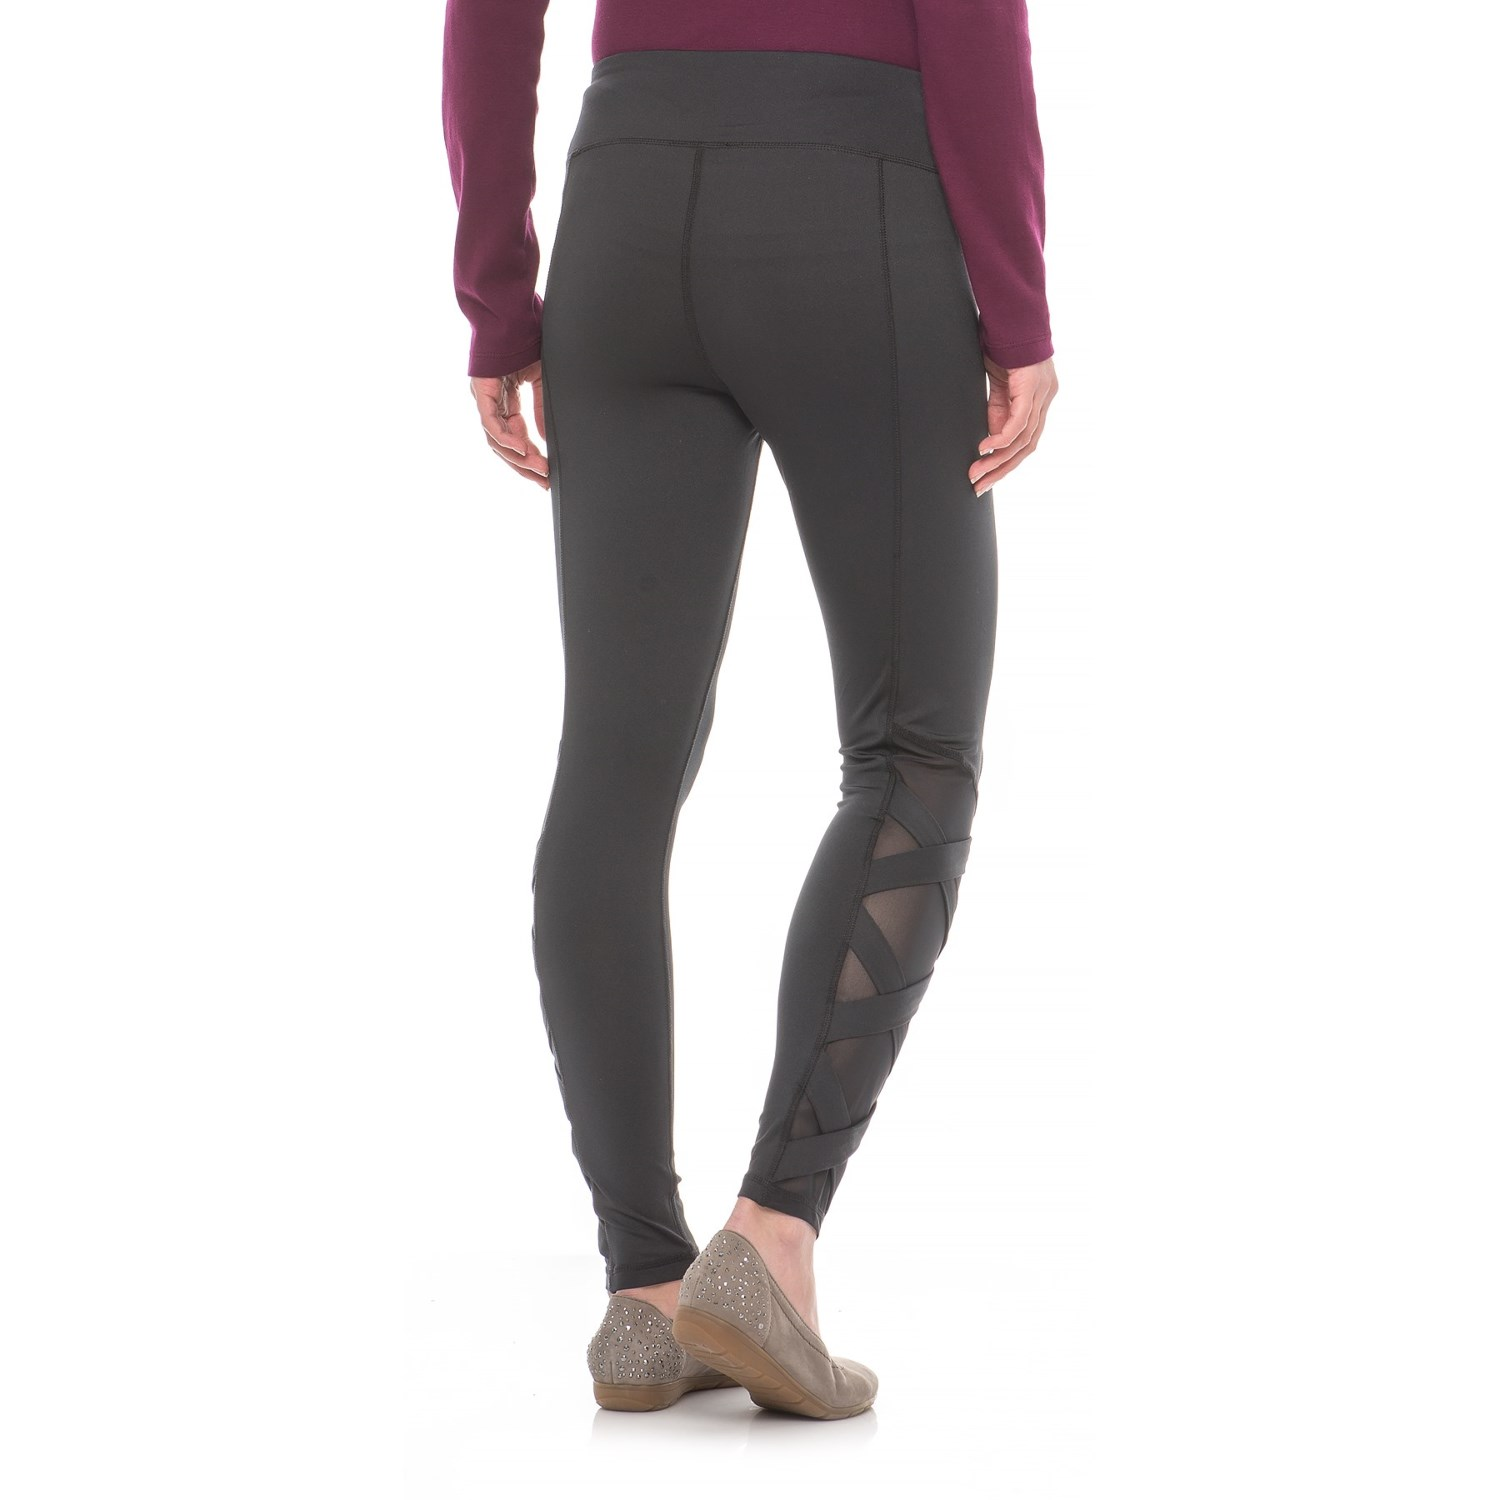 Cable & Gauge Mesh Hem Leggings (For Women) - Save 85%